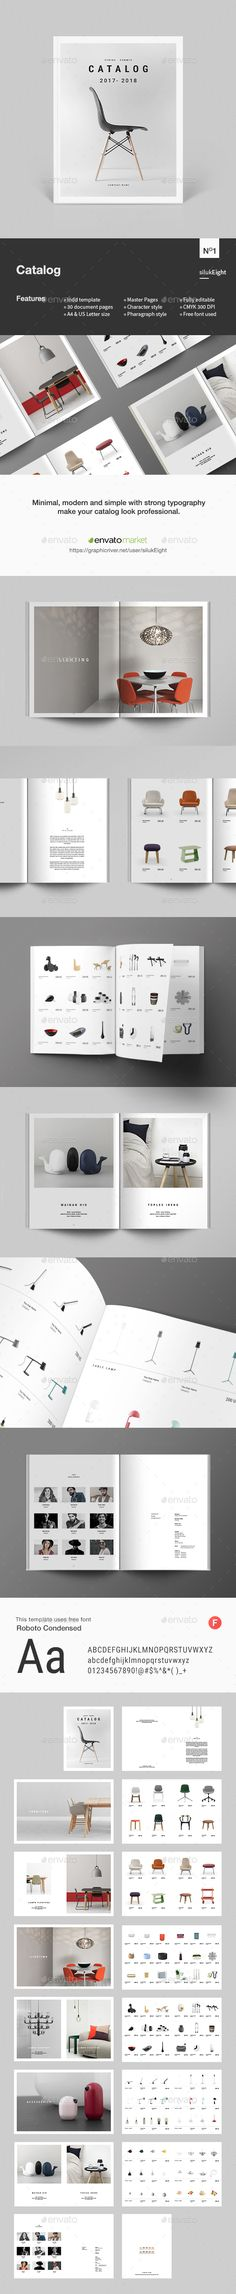 Product Catalog — InDesign INDD #agency #products catalog • Download ➝ https://graphicriver.net/item/product-catalog/19987835?ref=pxcr